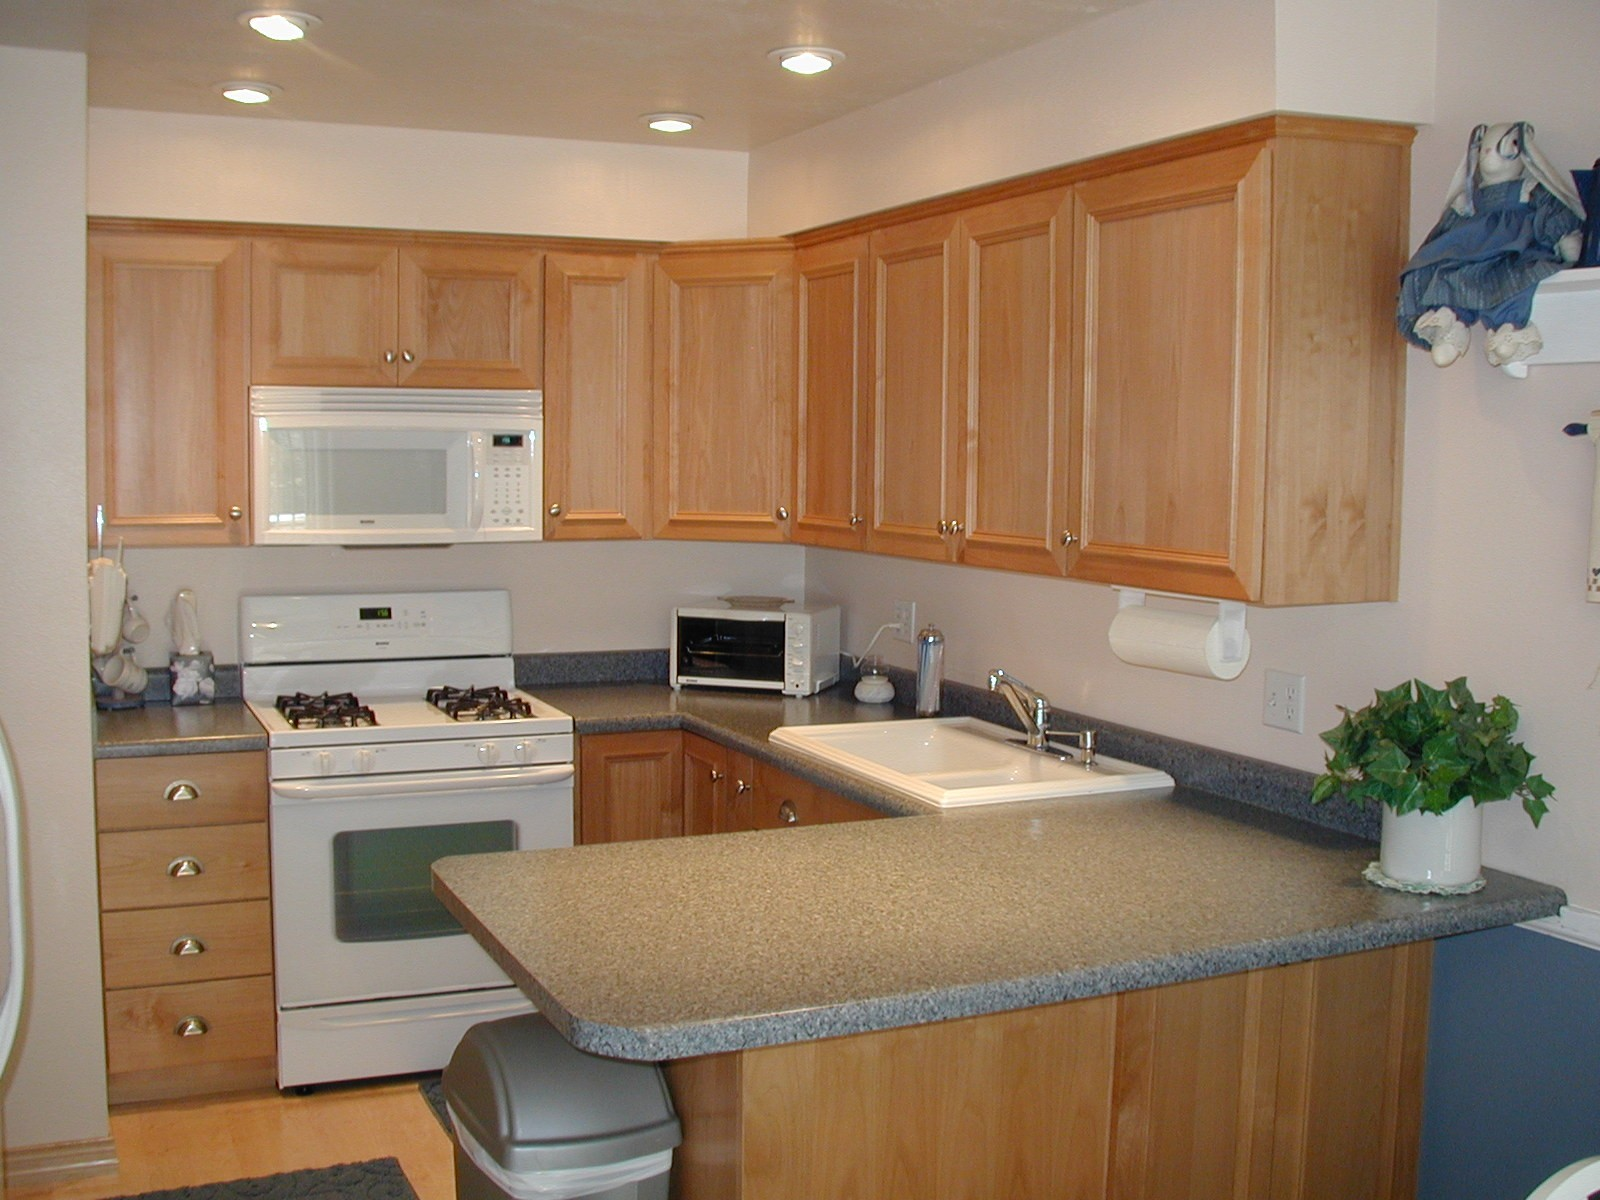 Kitchen Designs With Oak Cabinets And White Appliances Stainless Vs White Appliances Paint Installed Cabinet